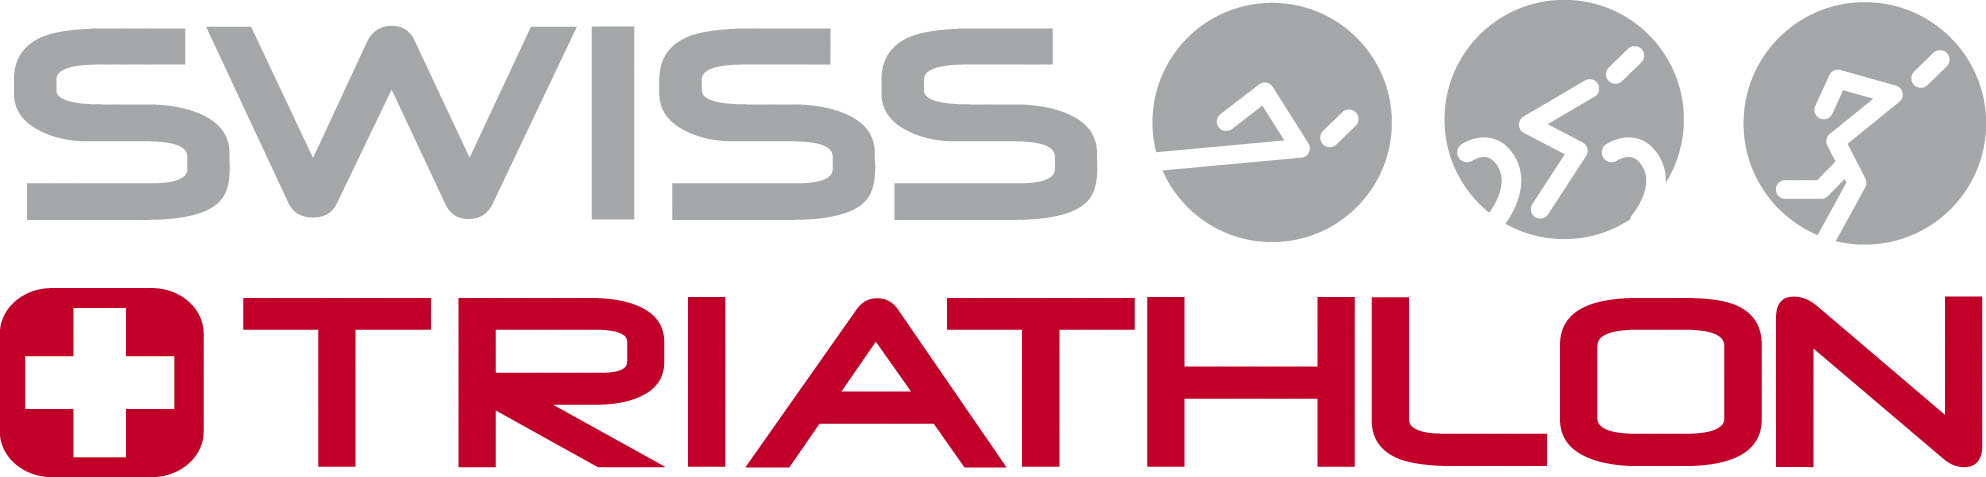 Swiss Triathlon Federation logo